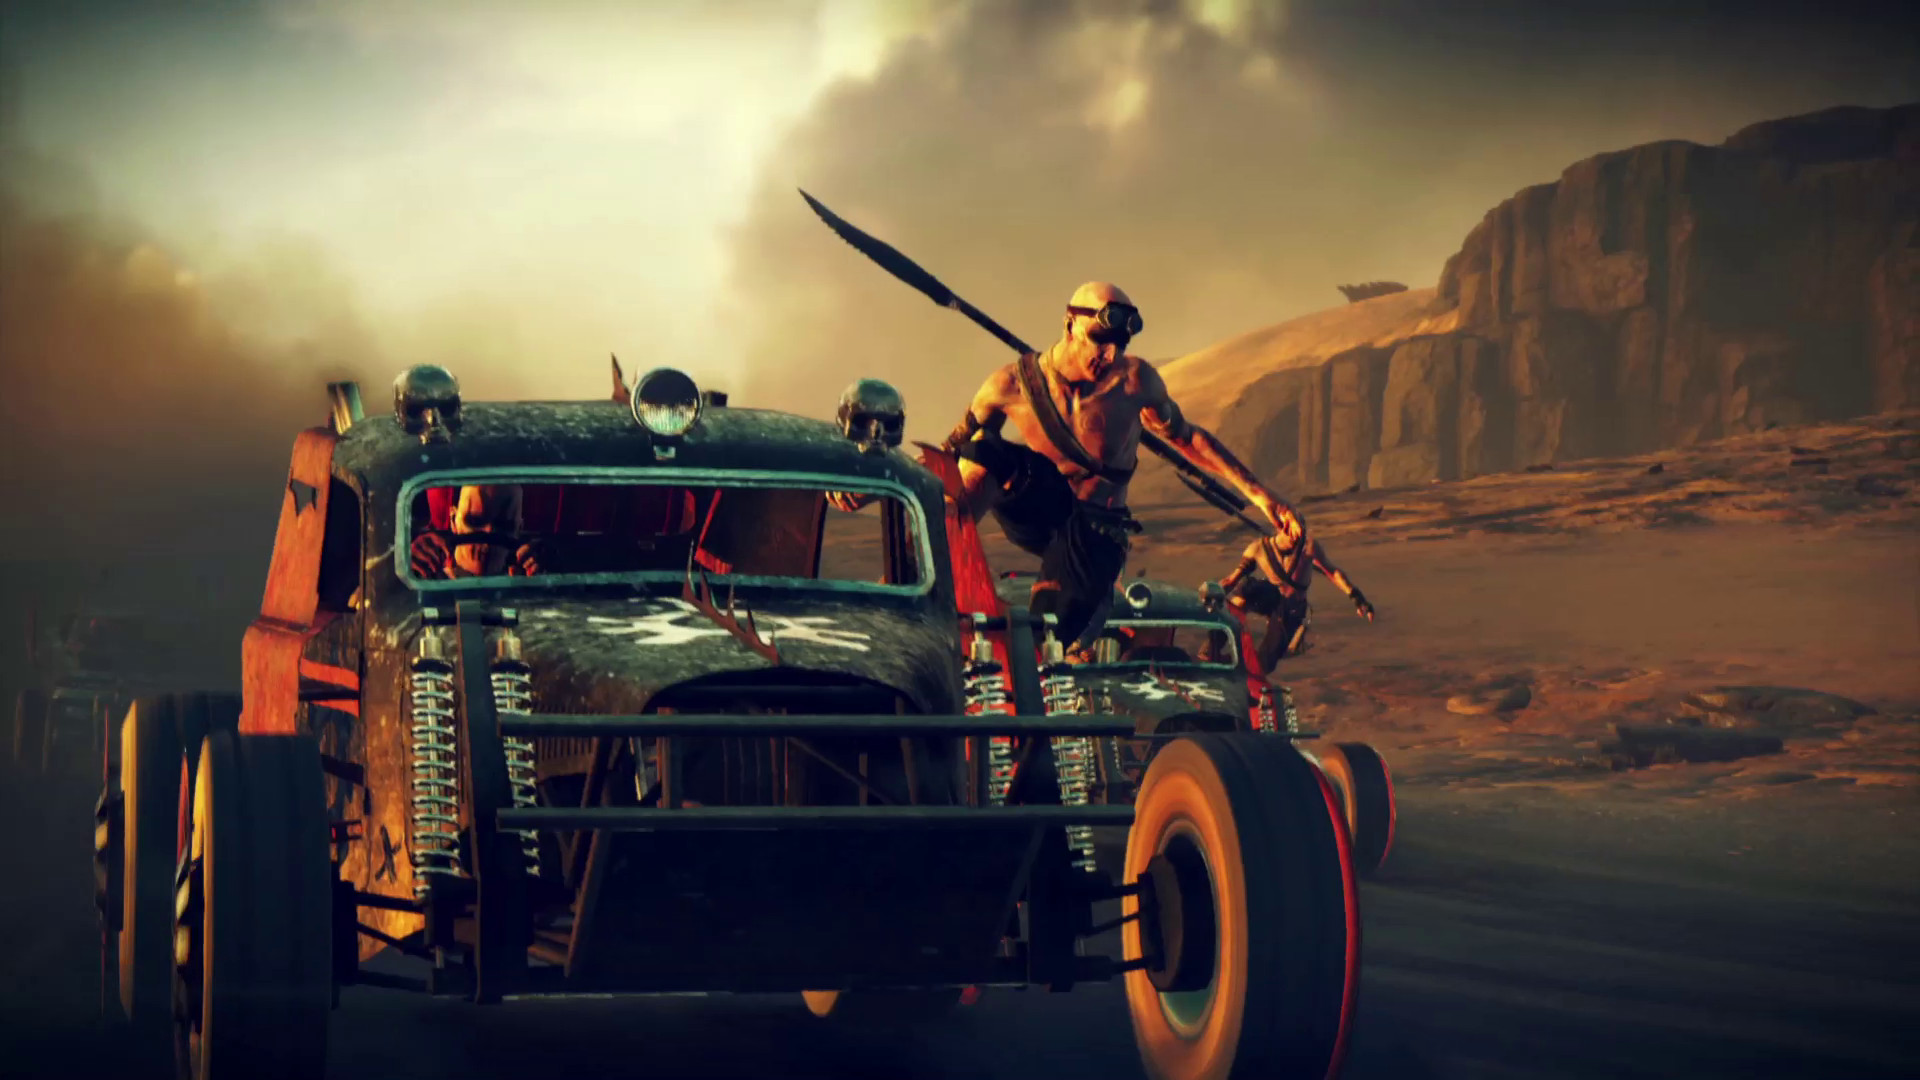 Mad Max's latest trailer keeps Fury Road's breakneck pace